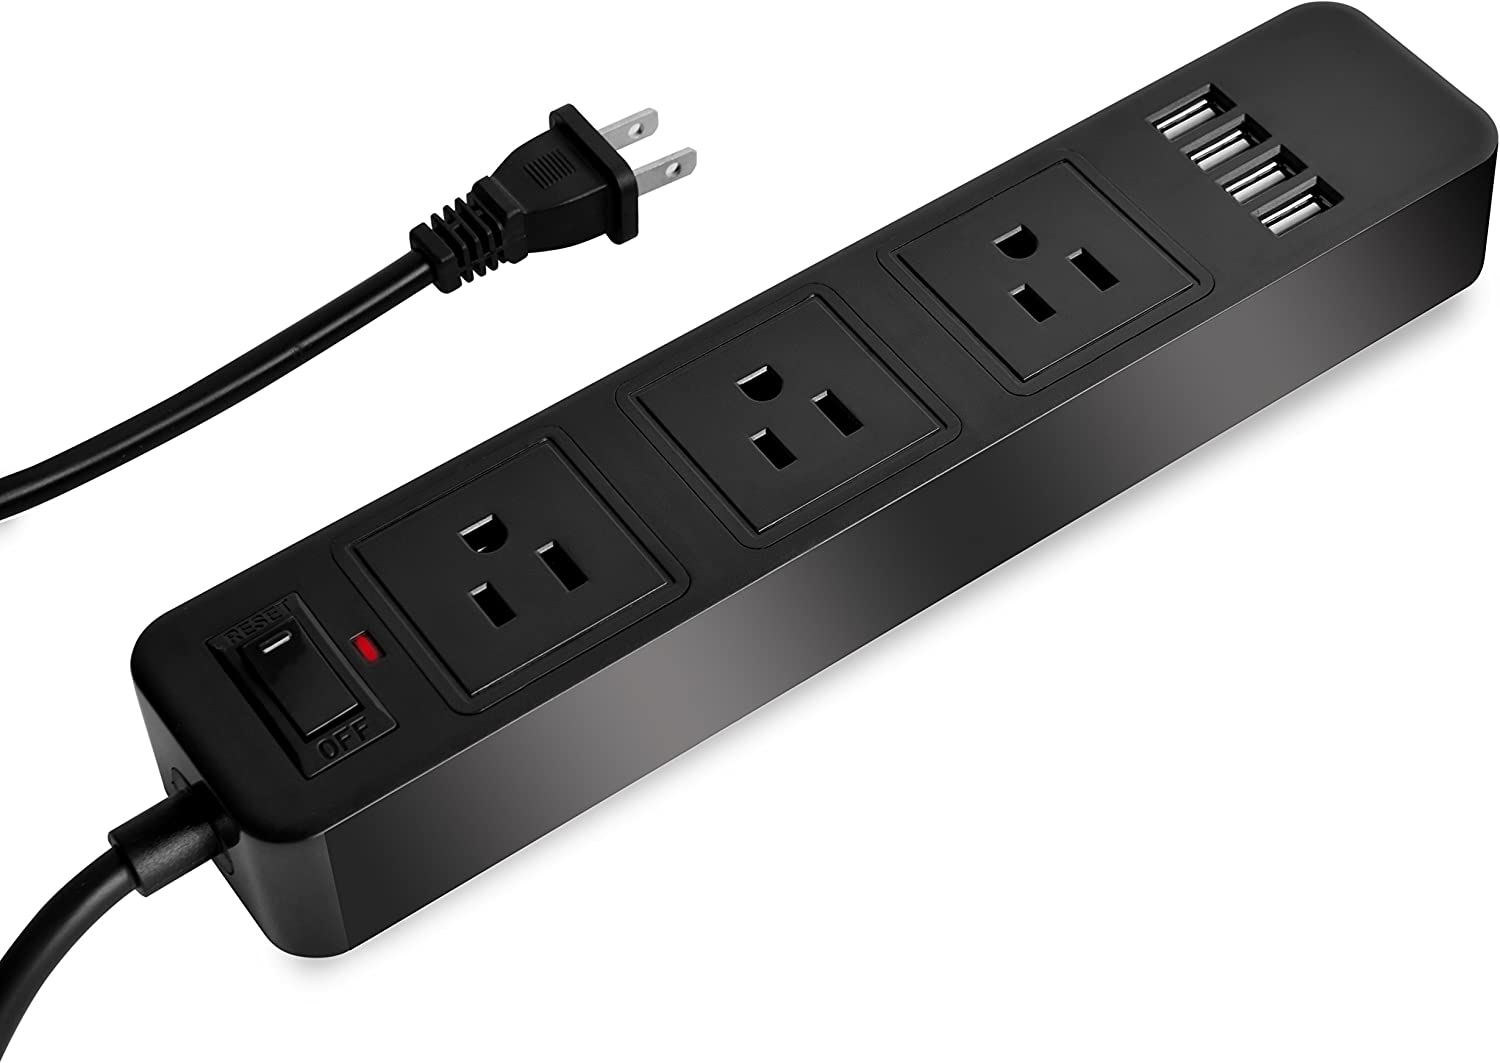 Elinker 3-Outlet Power Strip, with 4 USB Charging ports Home/Office Surge Protector with 6.6ft Extension Cord for Smartphone and Tablets Black